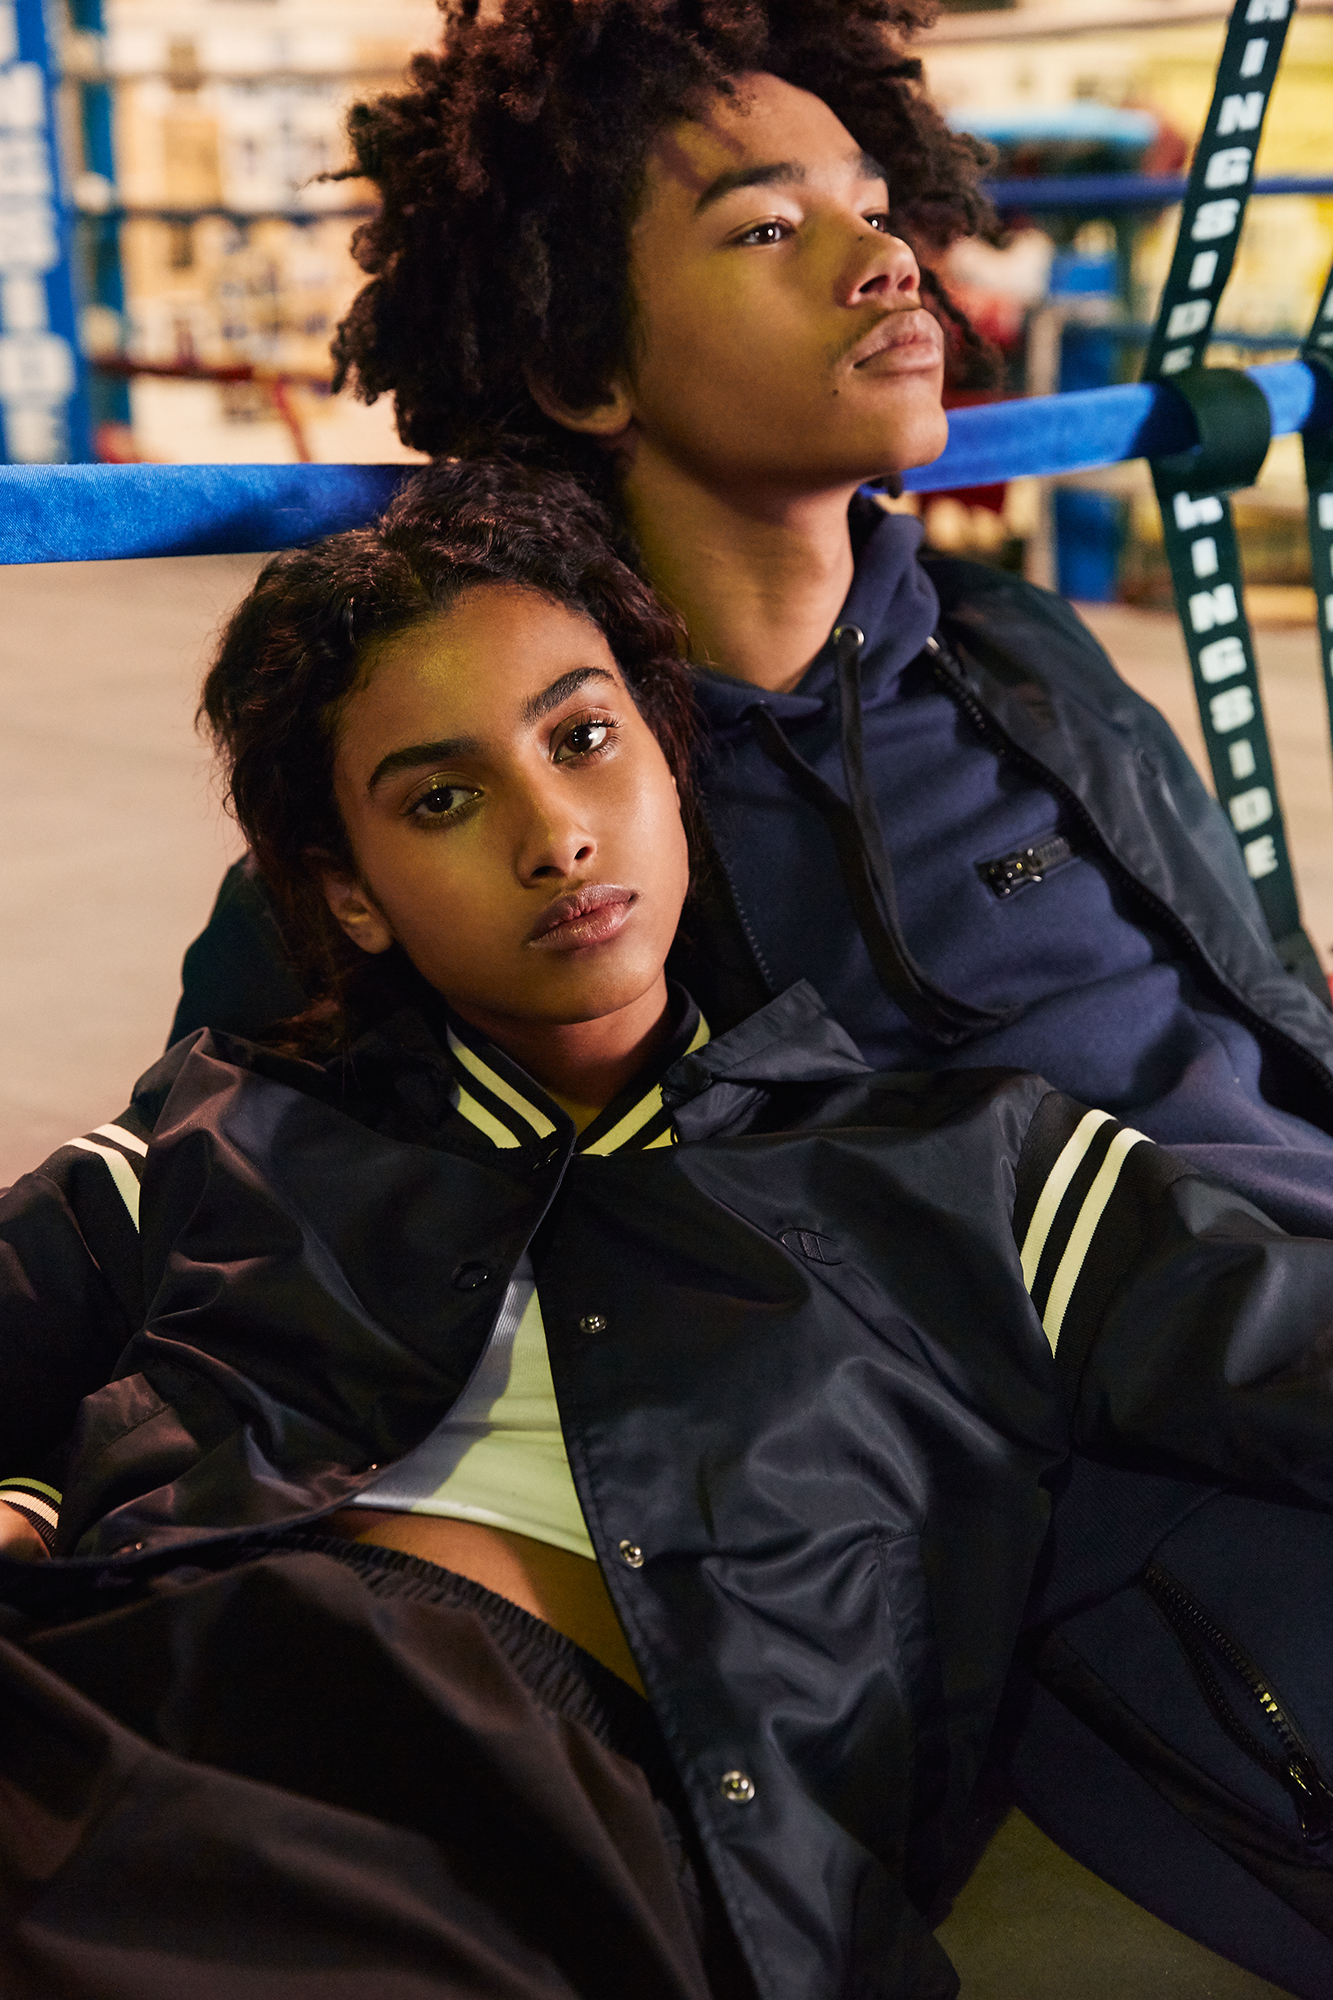 Outfitters urban announces new collaborations exclusive photo